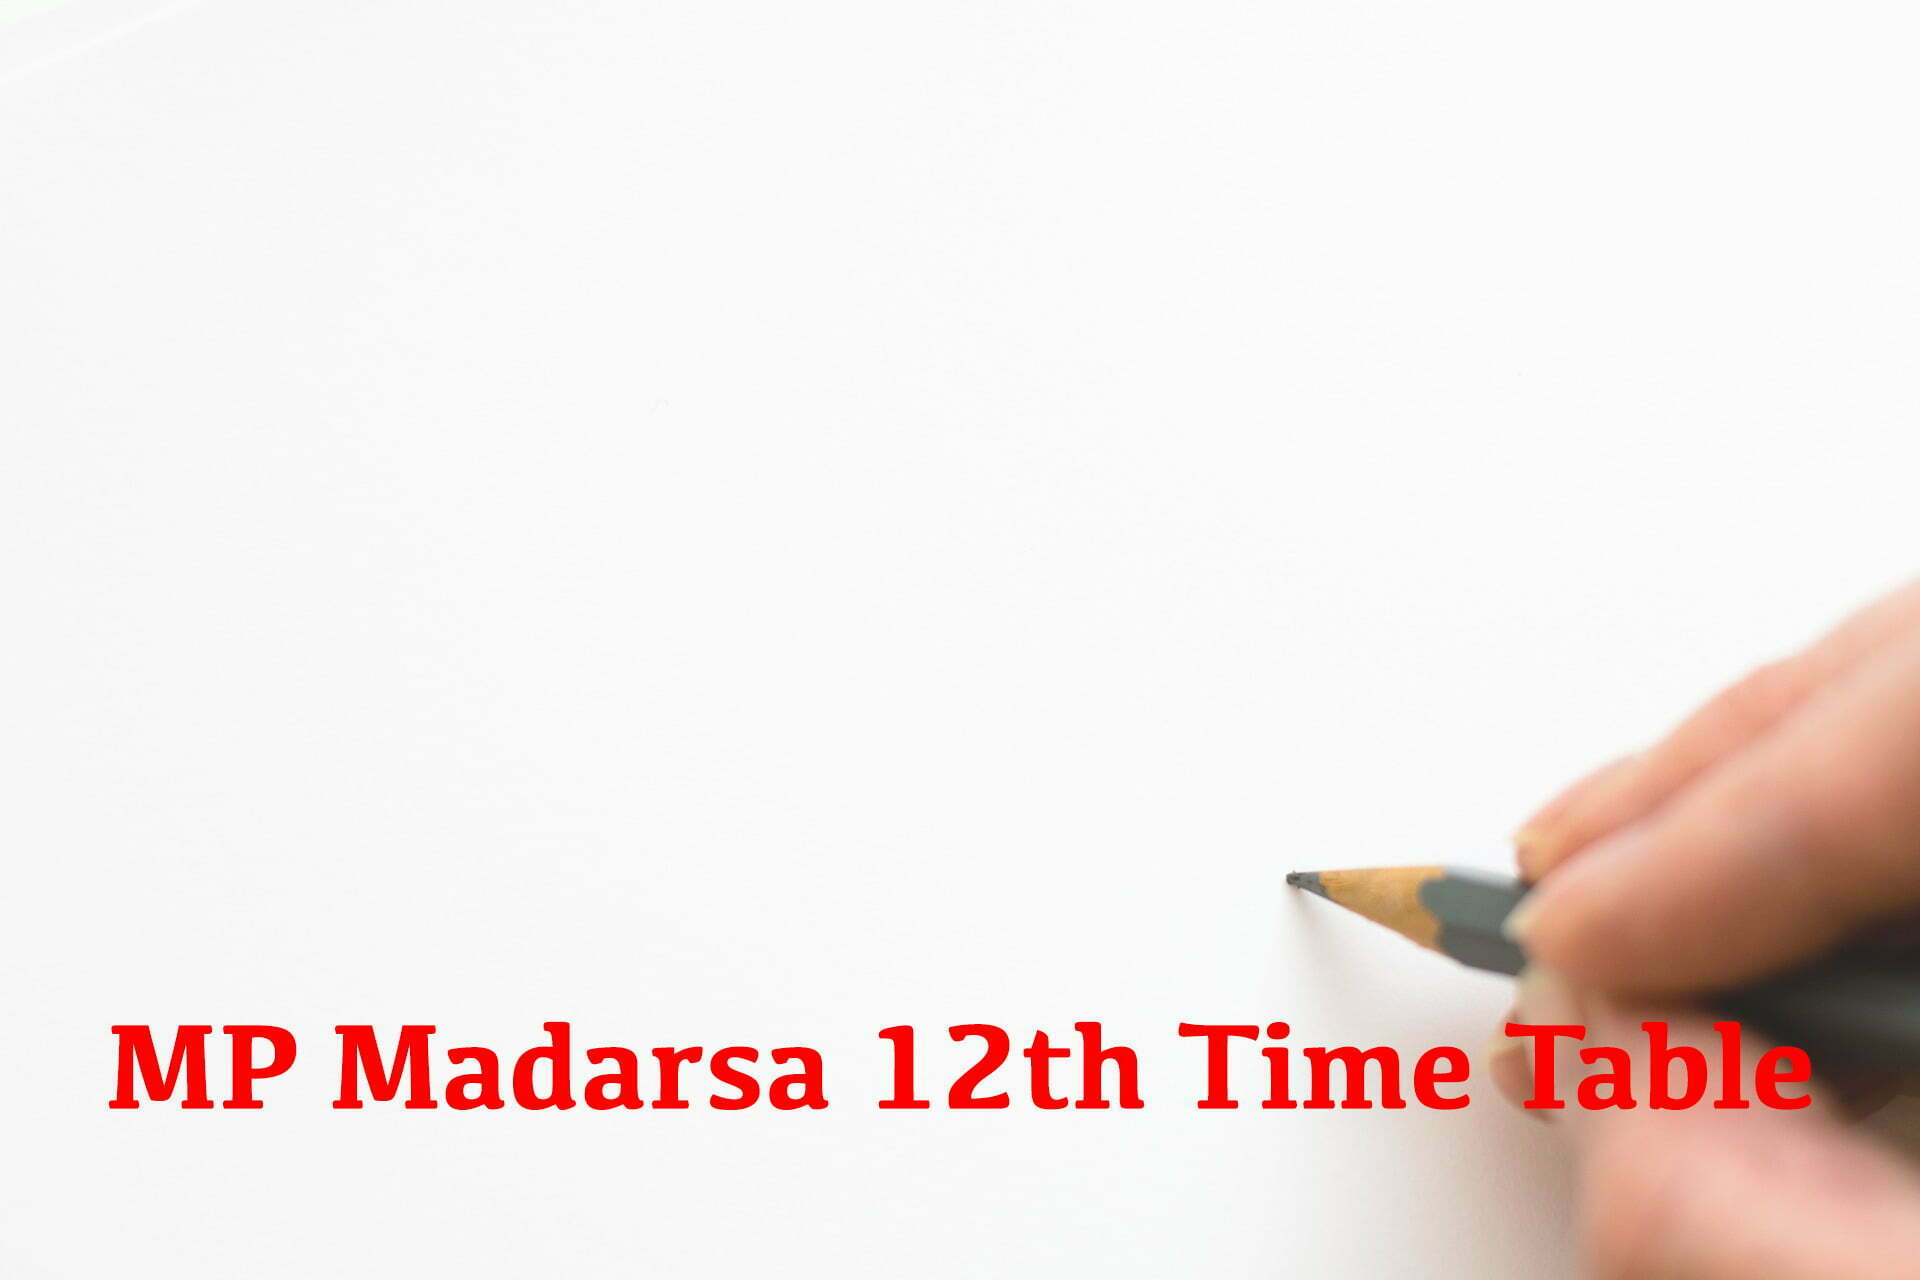 MP Madarsa 12th Time Table